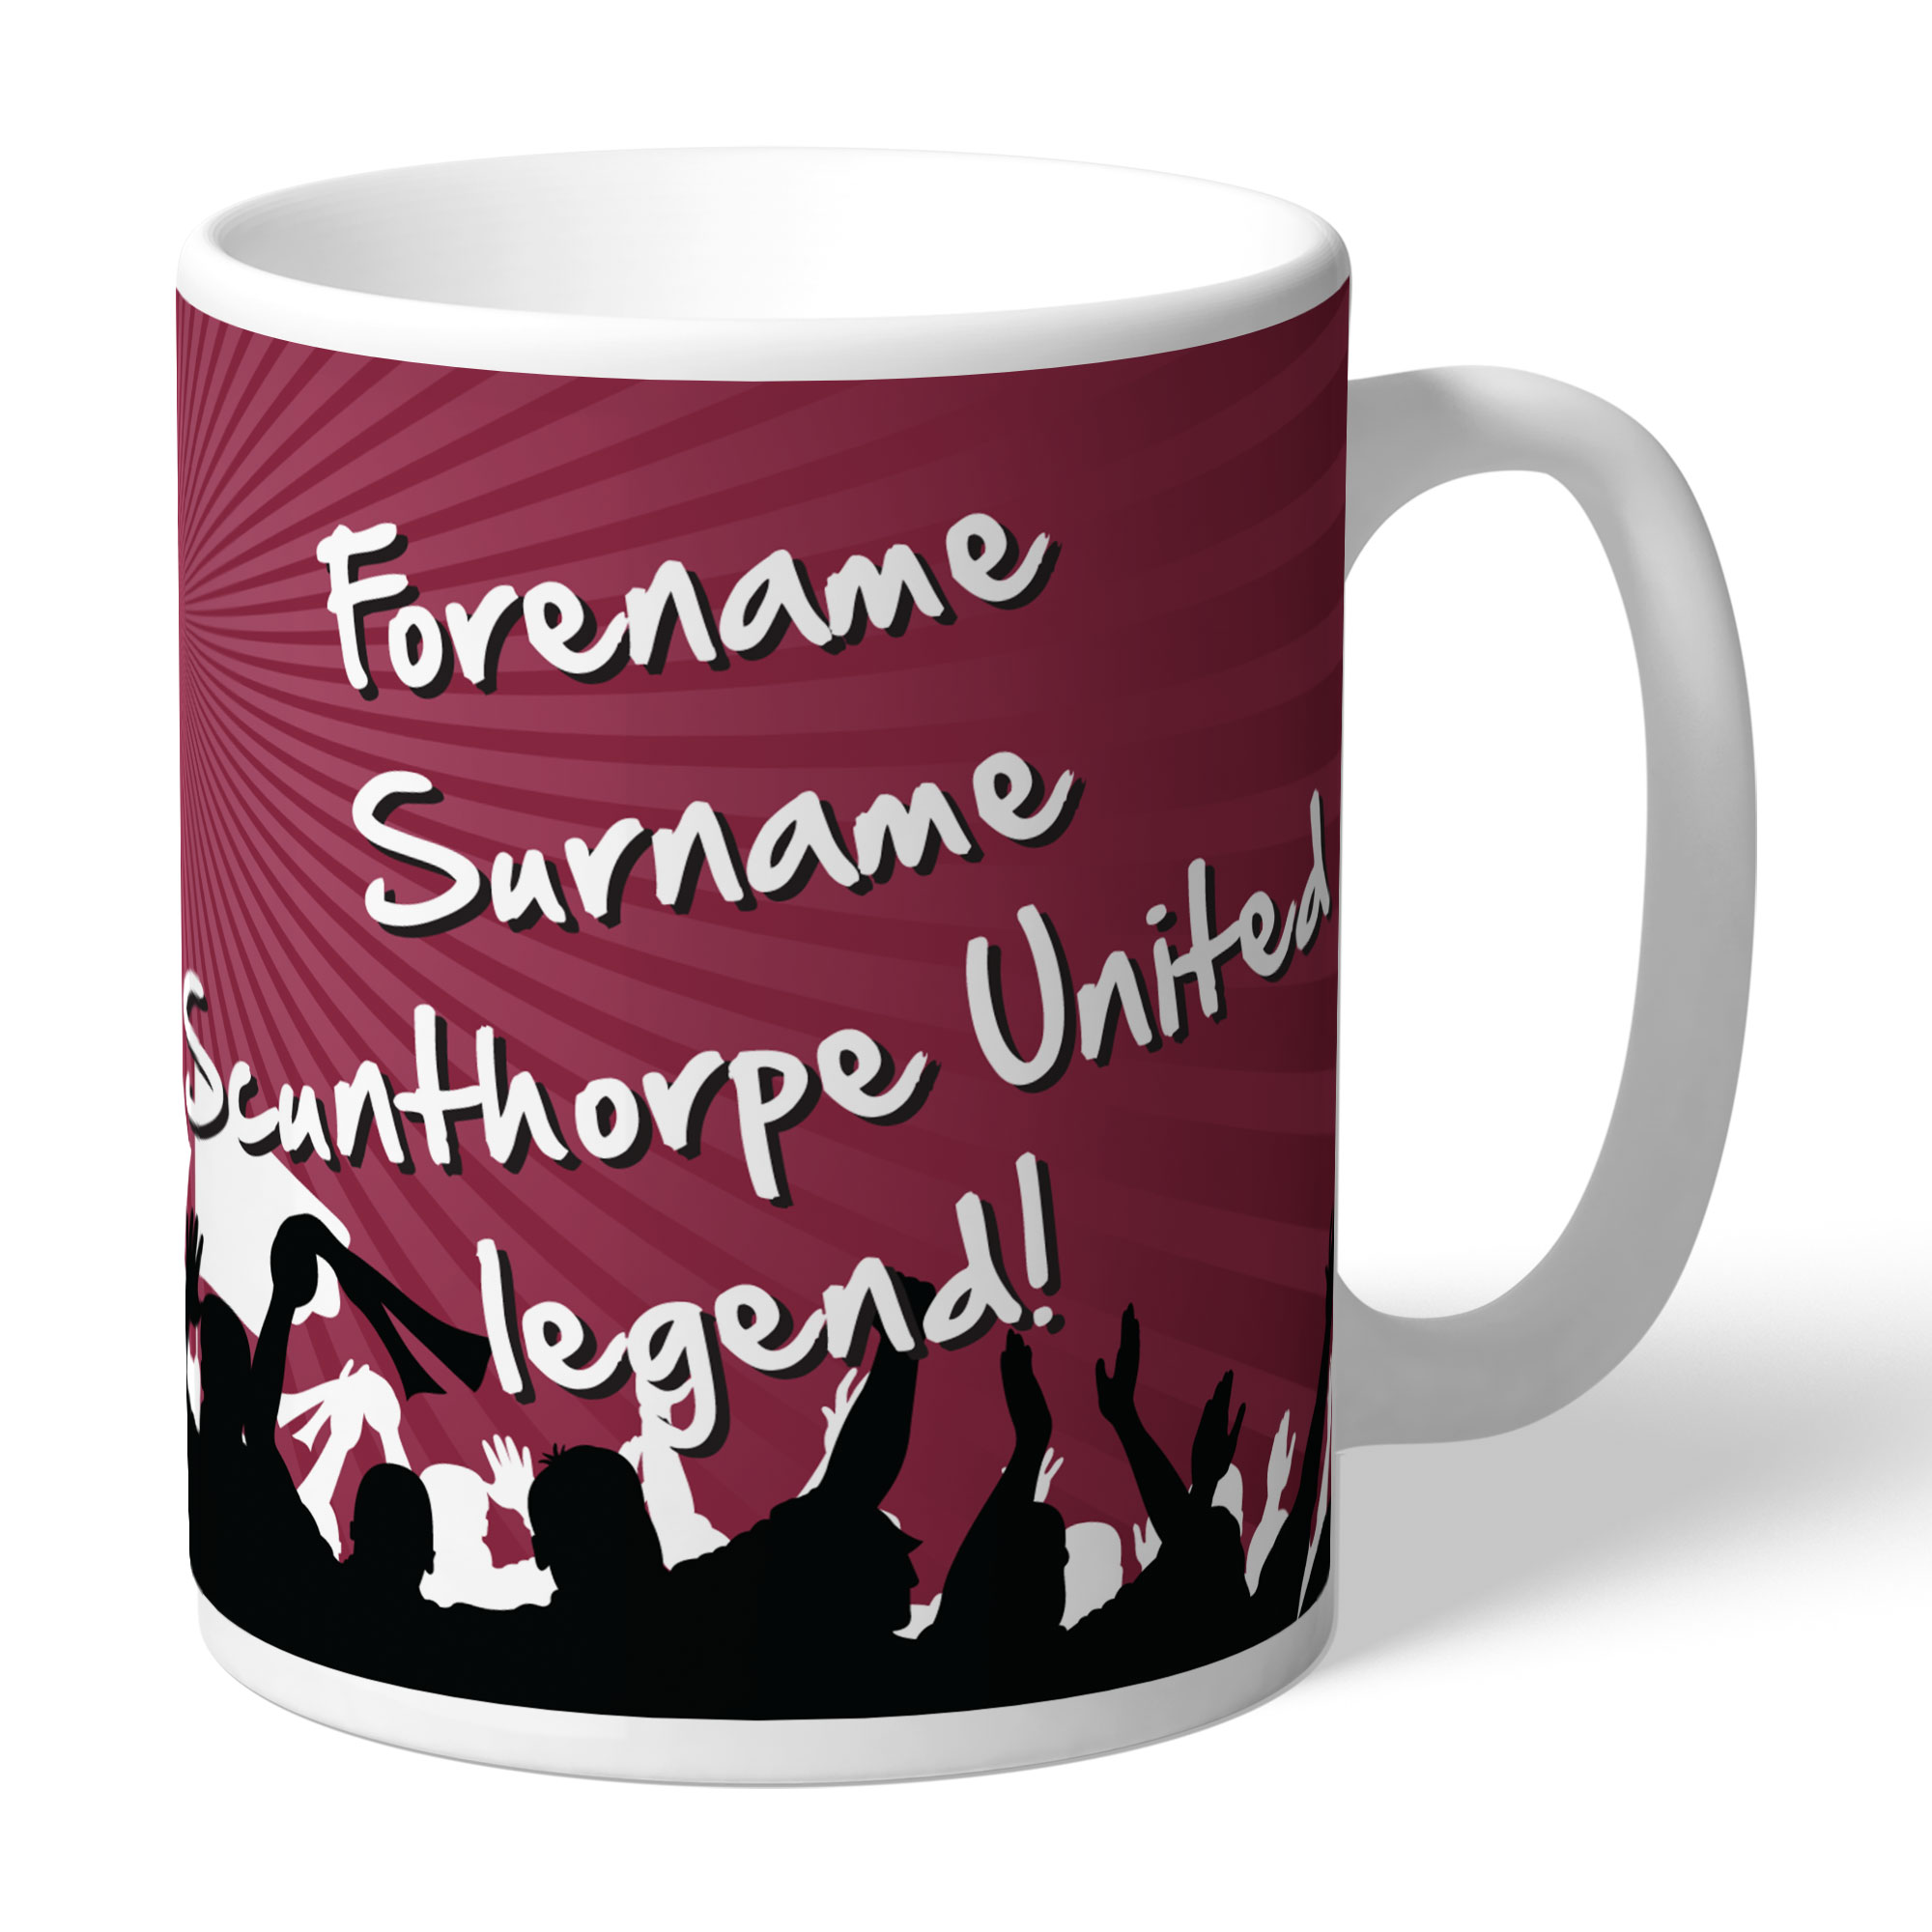 Scunthorpe United FC Legend Mug